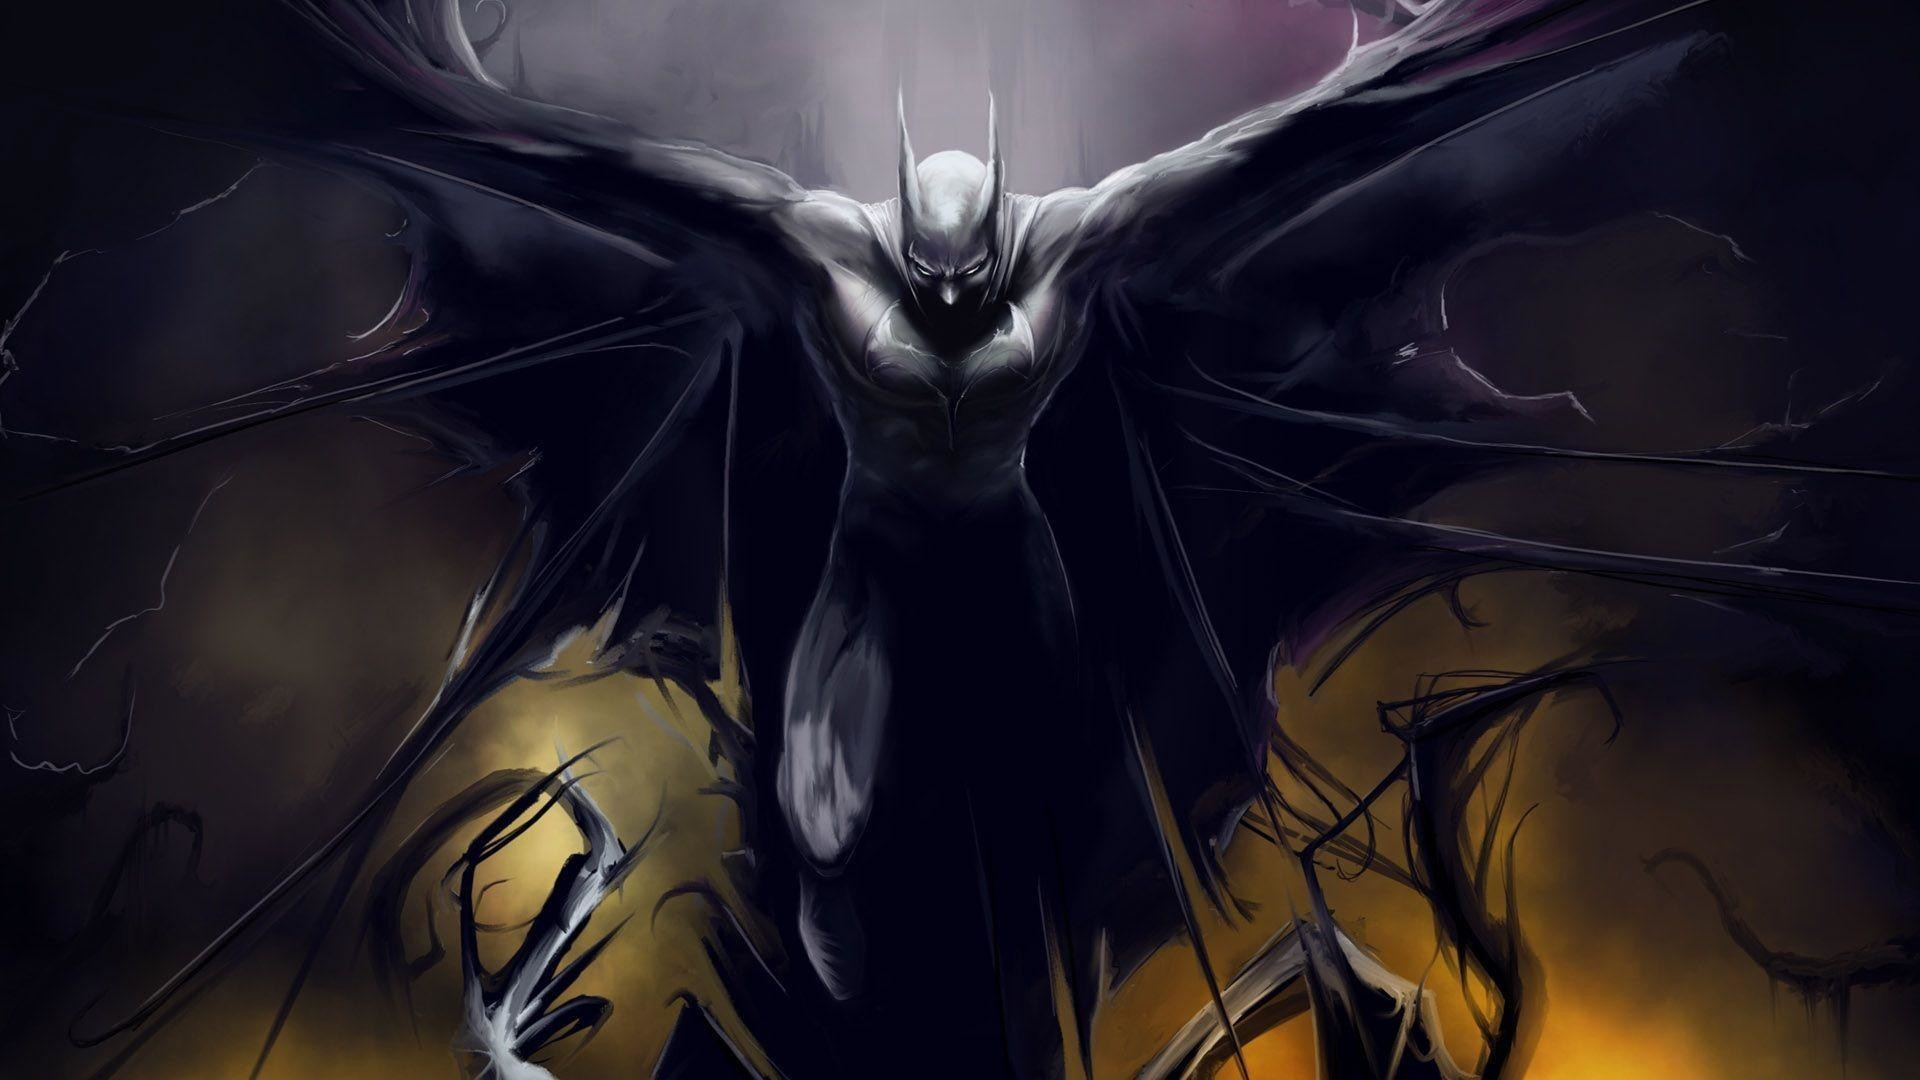 1920x1080 Badass Batman HD Wallpaper | Download HD Wallpaper, High .